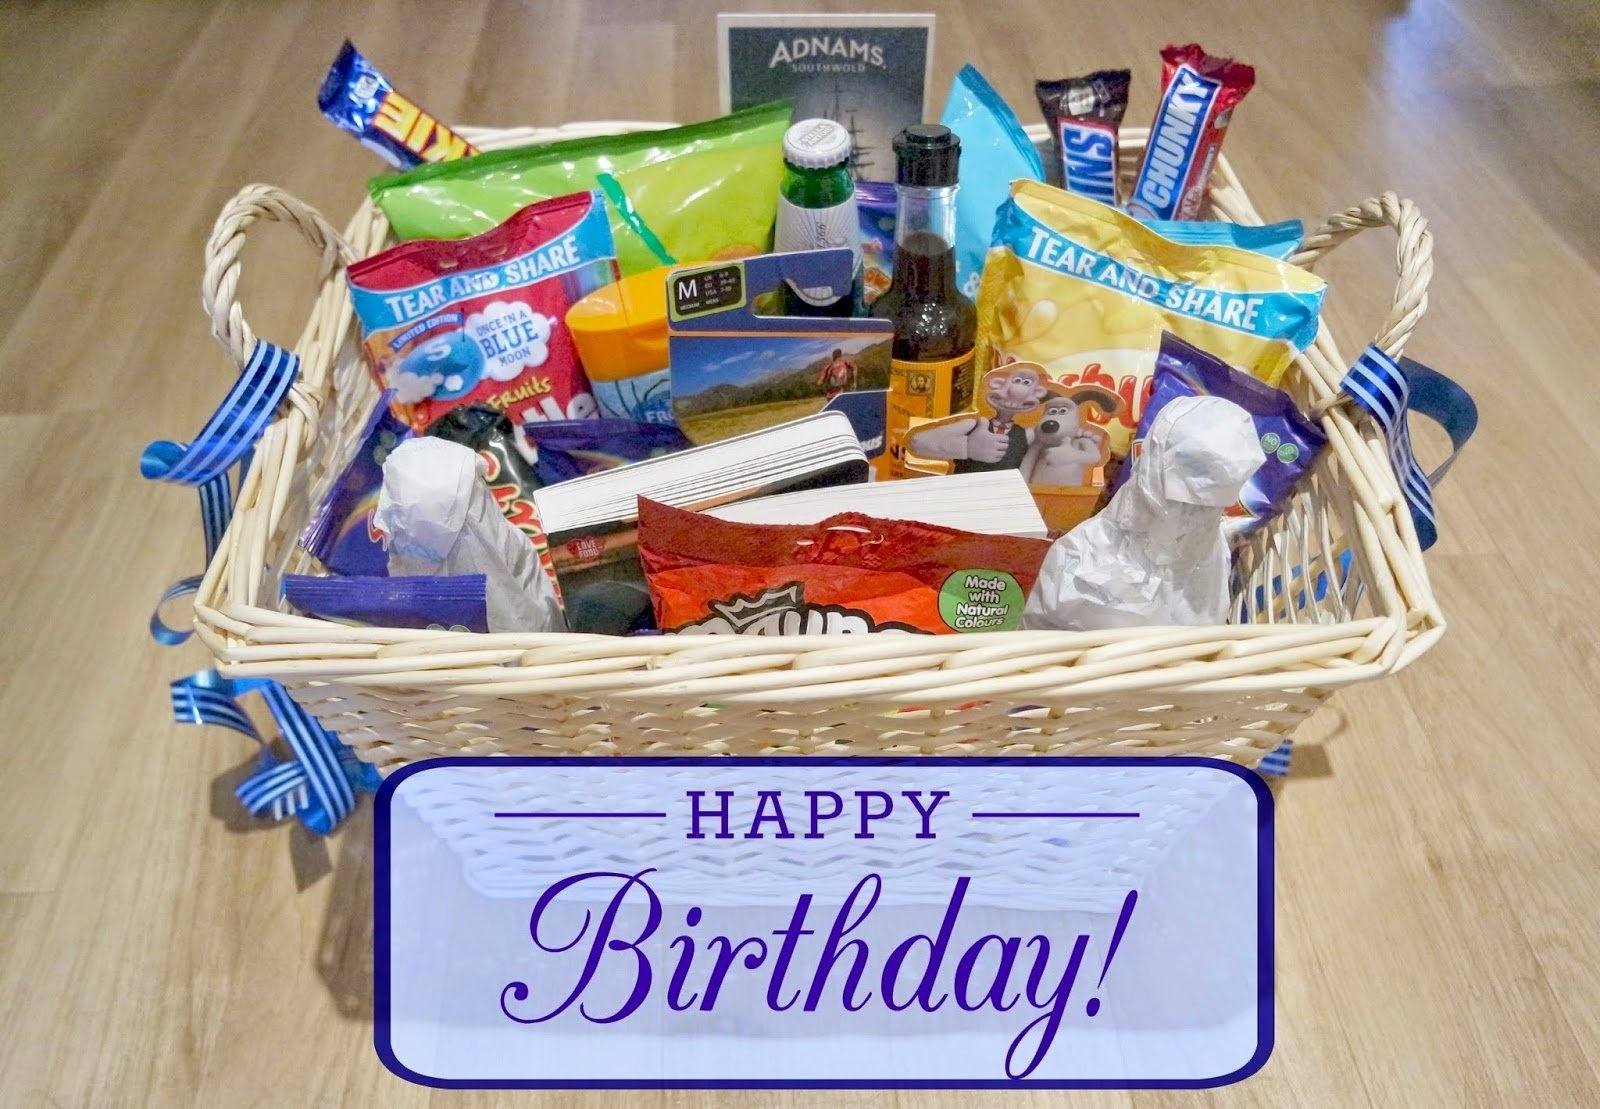 10 Unique Birthday Present Ideas For Dad Uptown Peach My Dads 50th Hamper Mens Gift